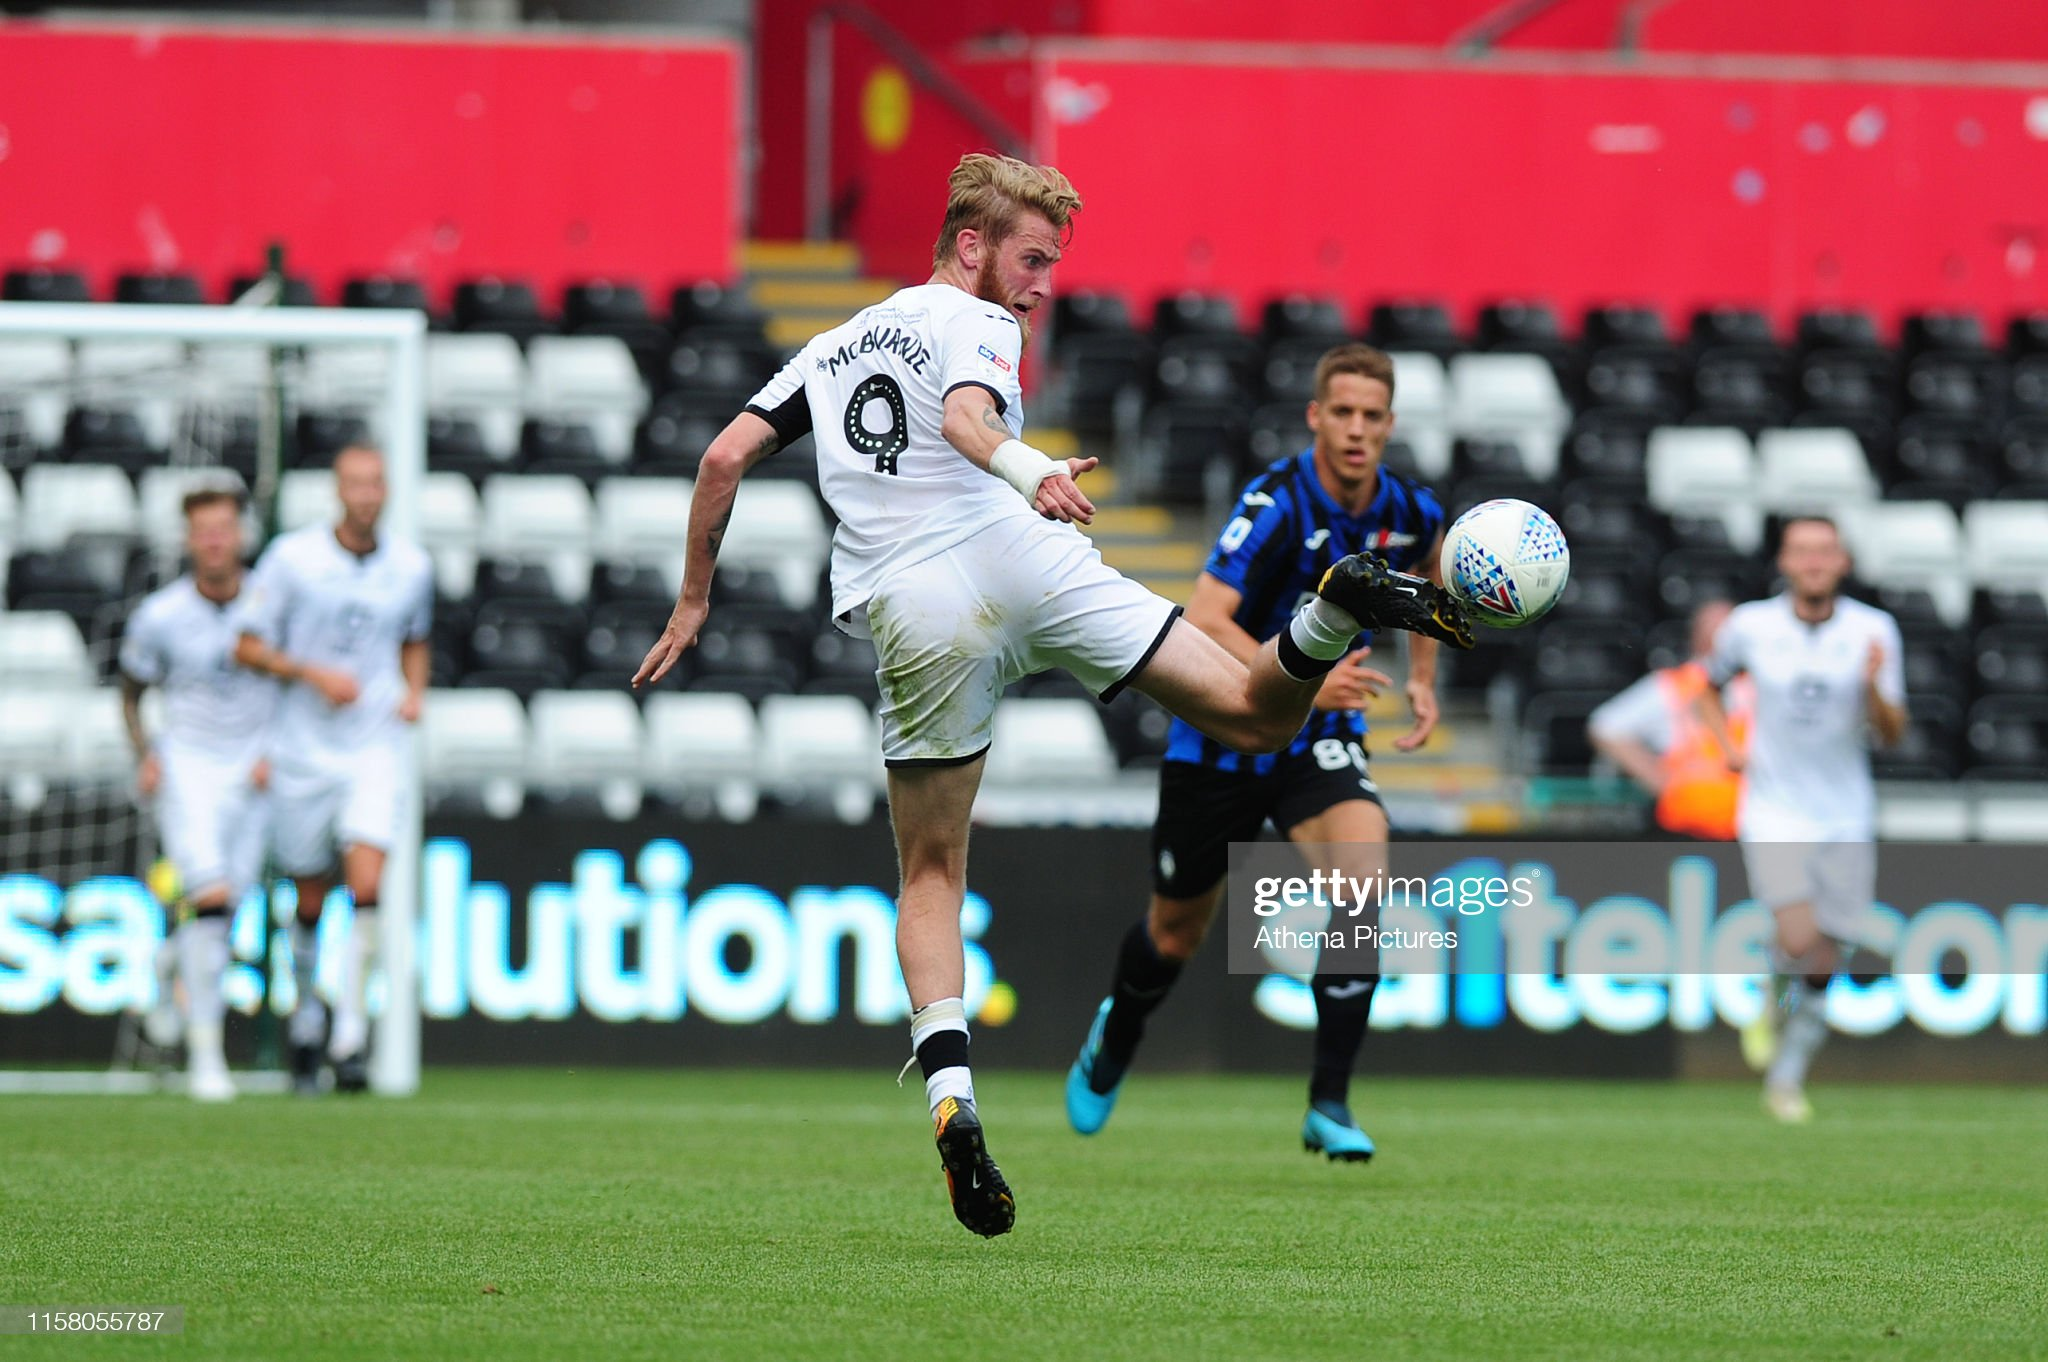 Swansea City v Atalanta - Pre-Season freindly : News Photo